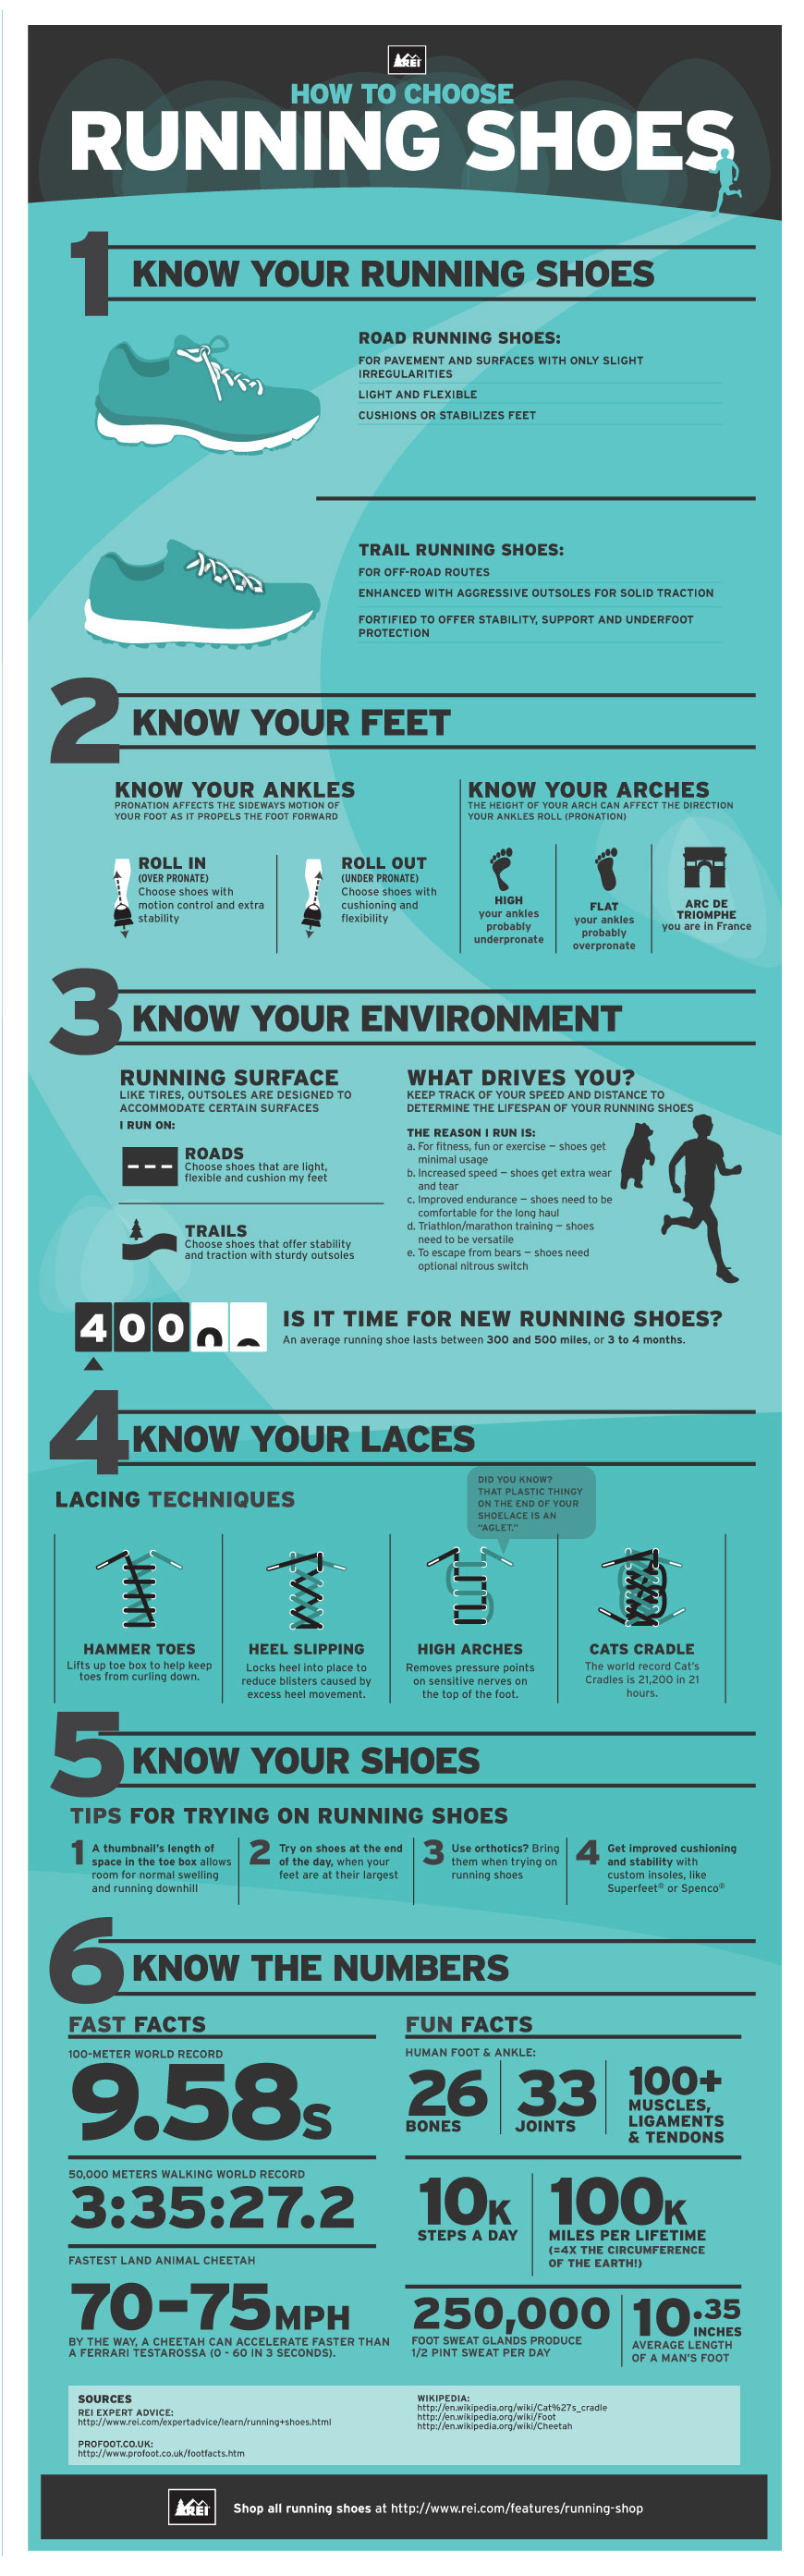 best-running-shoes-for-your-feet-infographic